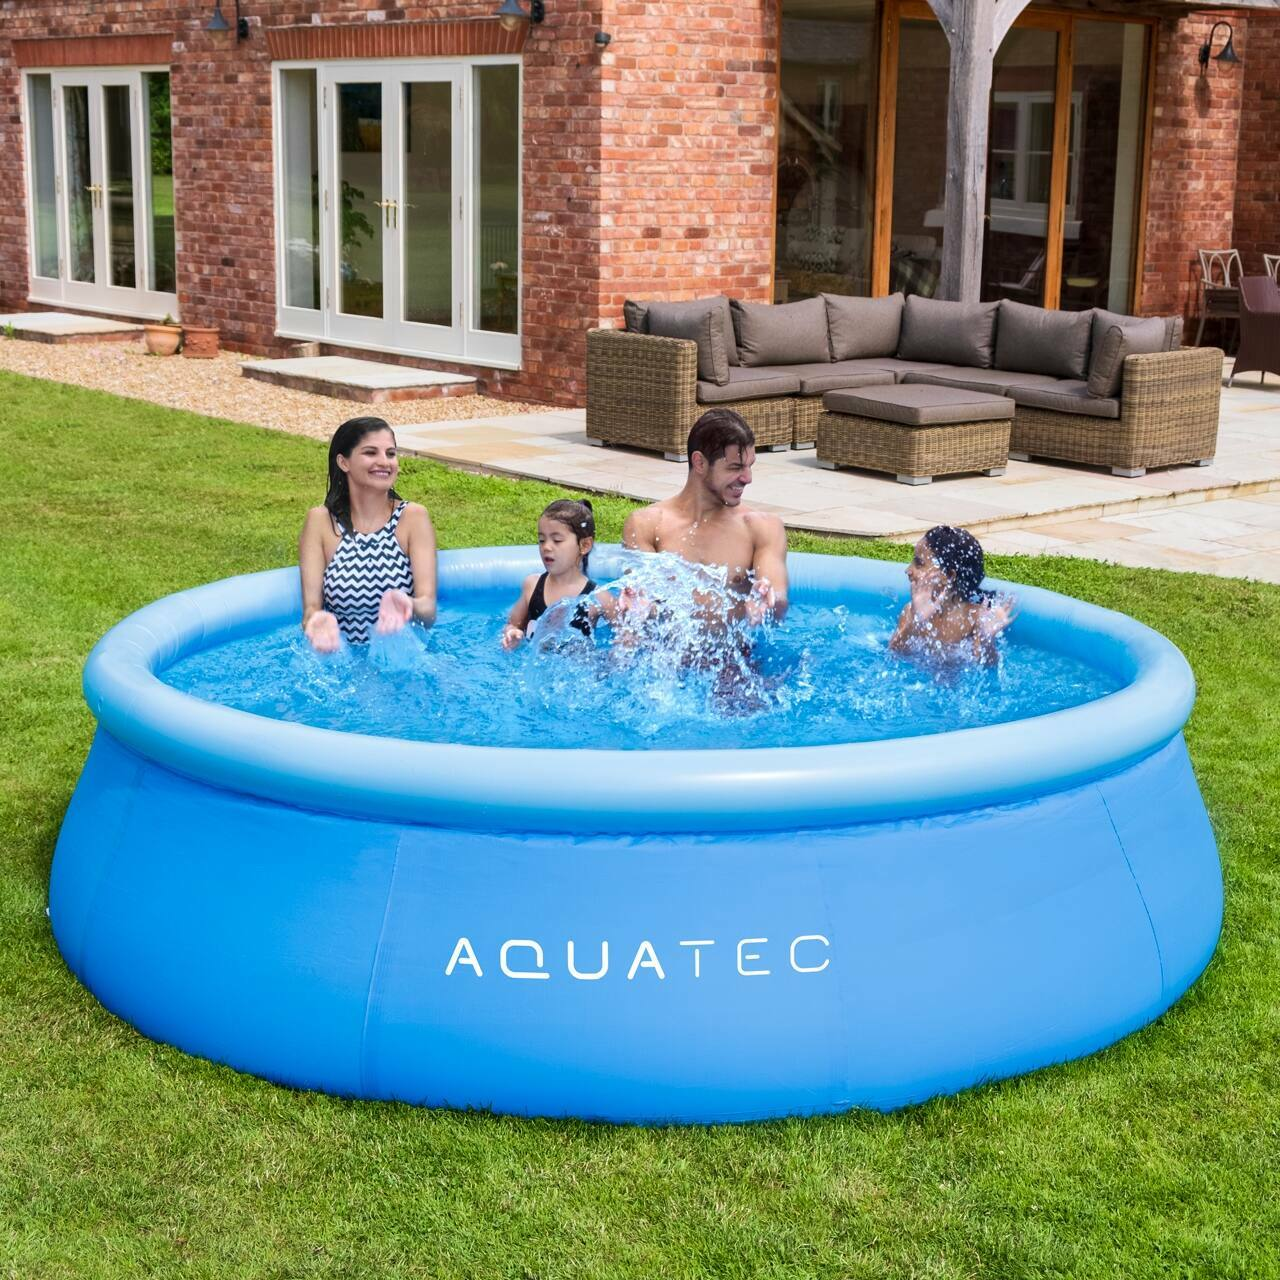 AquaTec Inflatable Paddling/Swimming Pools [5 Sizes]